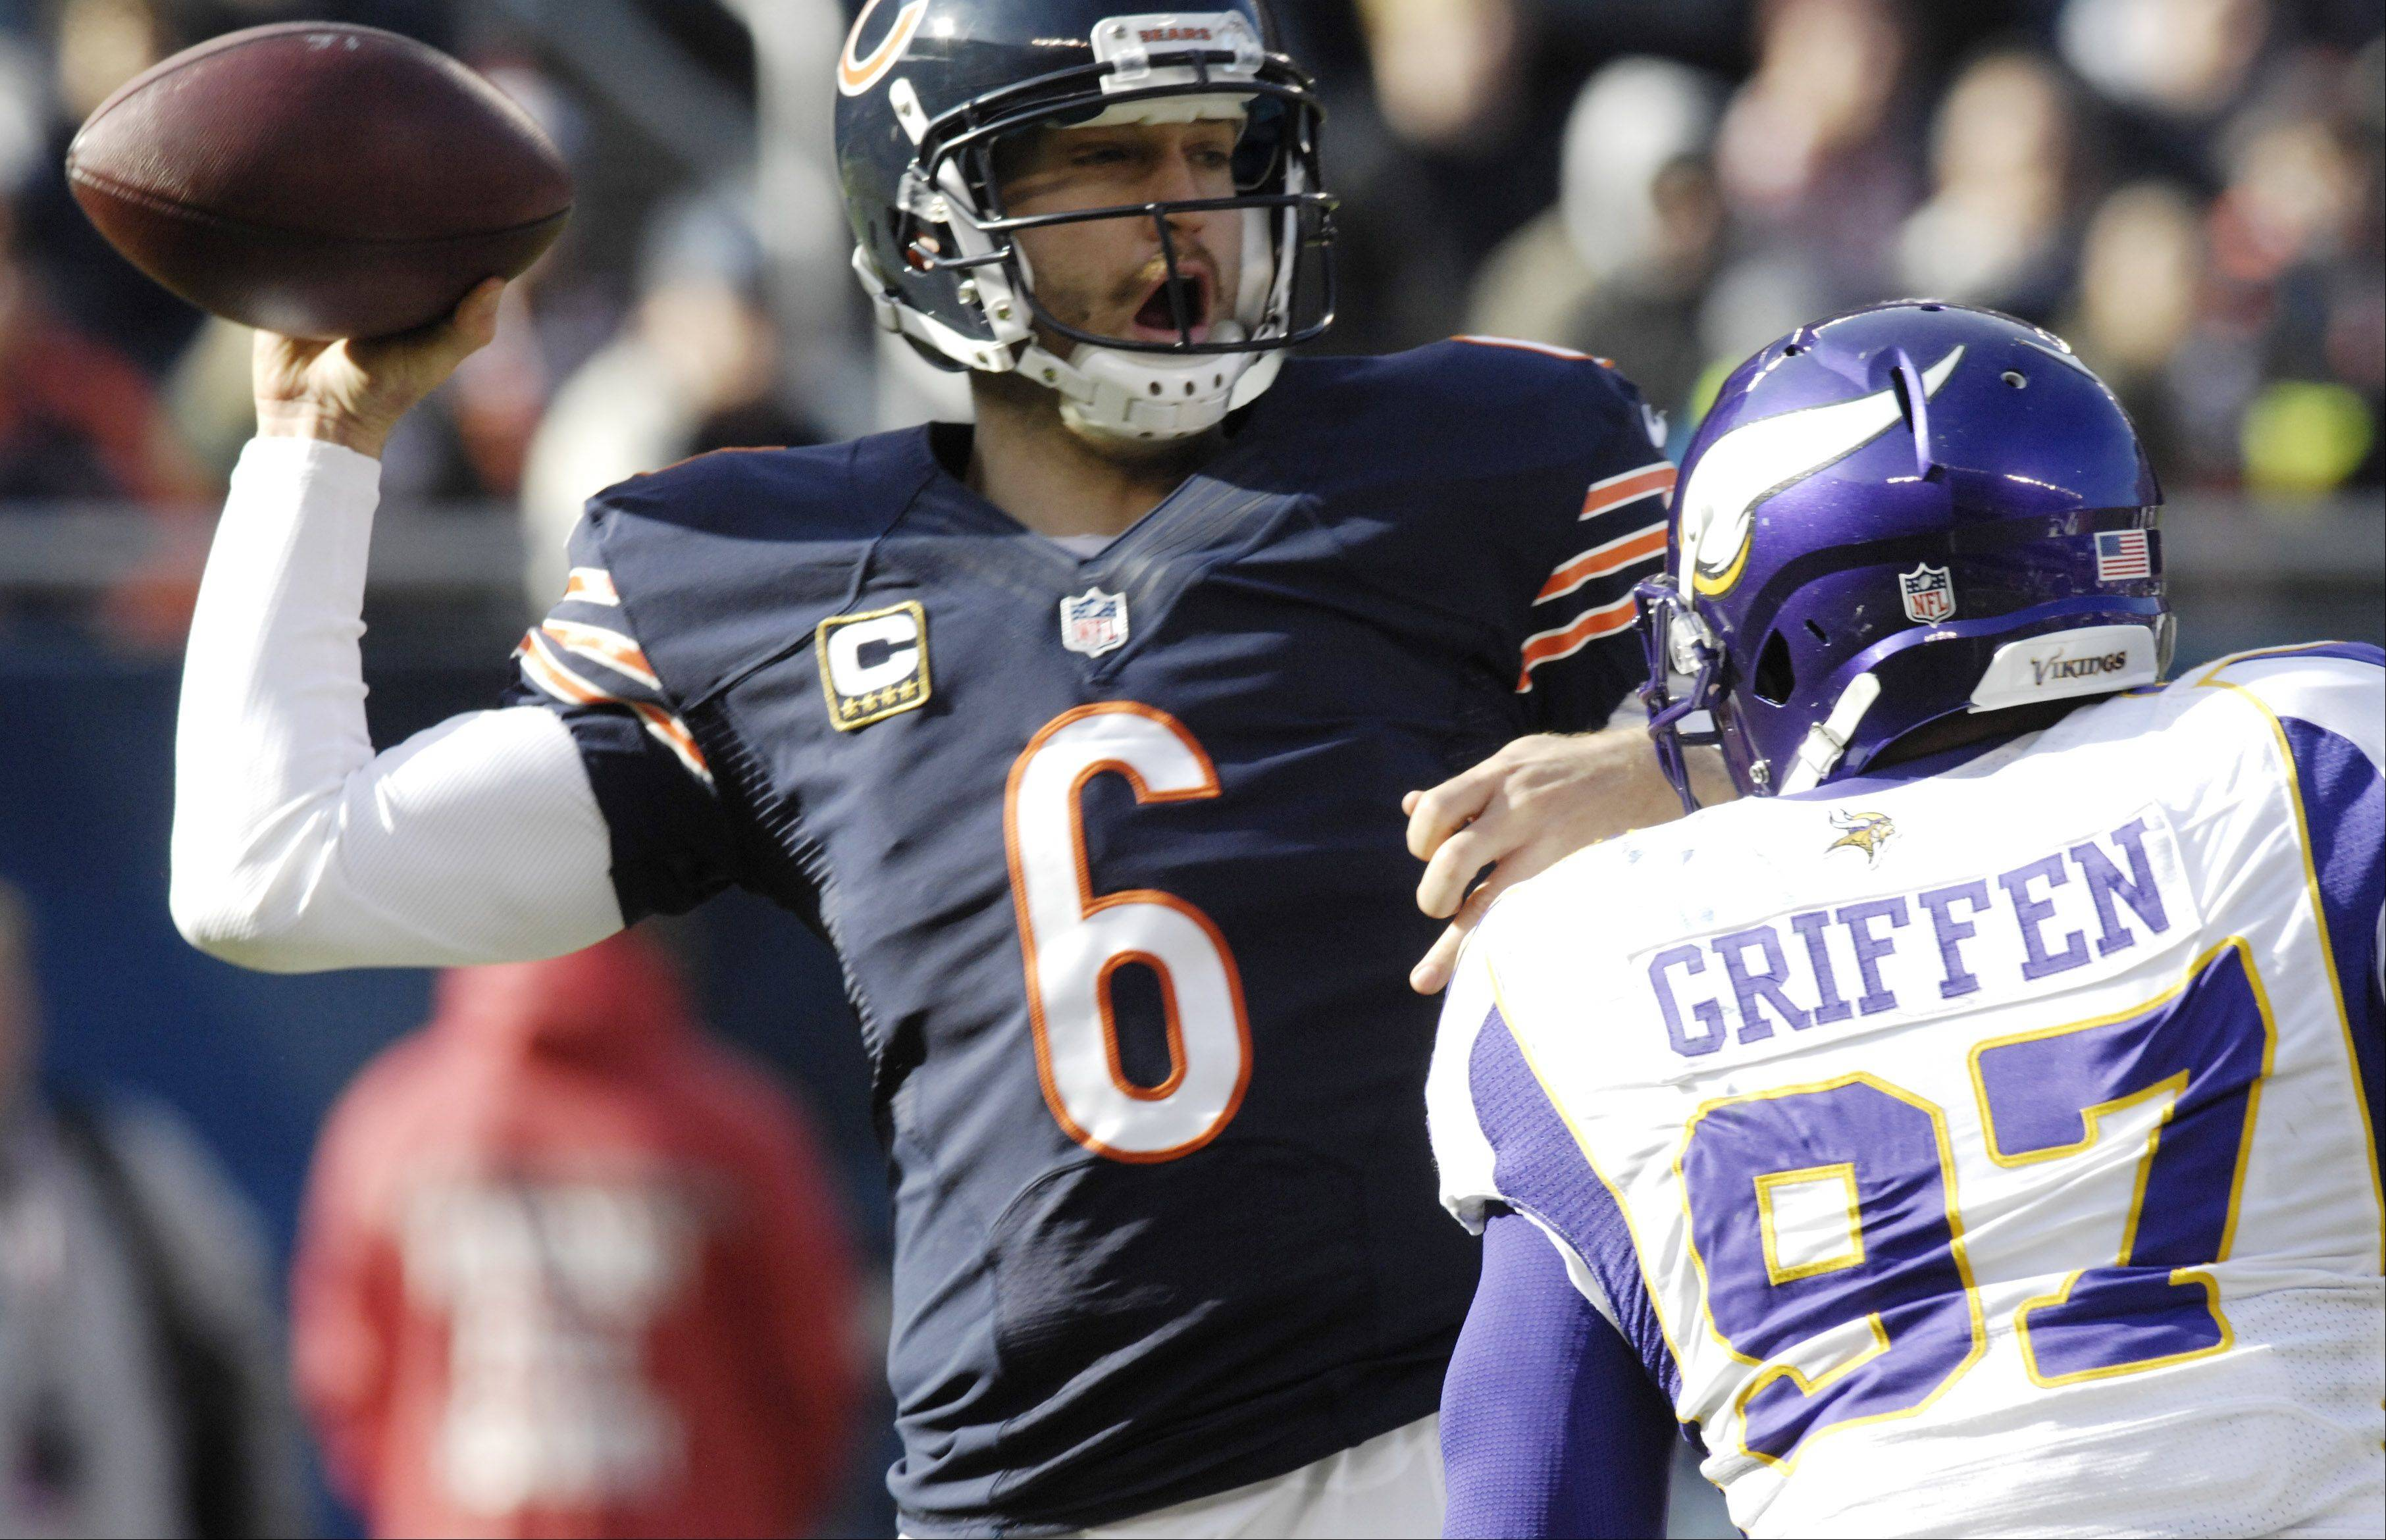 Bears' Cutler hoping for fast start against Seattle